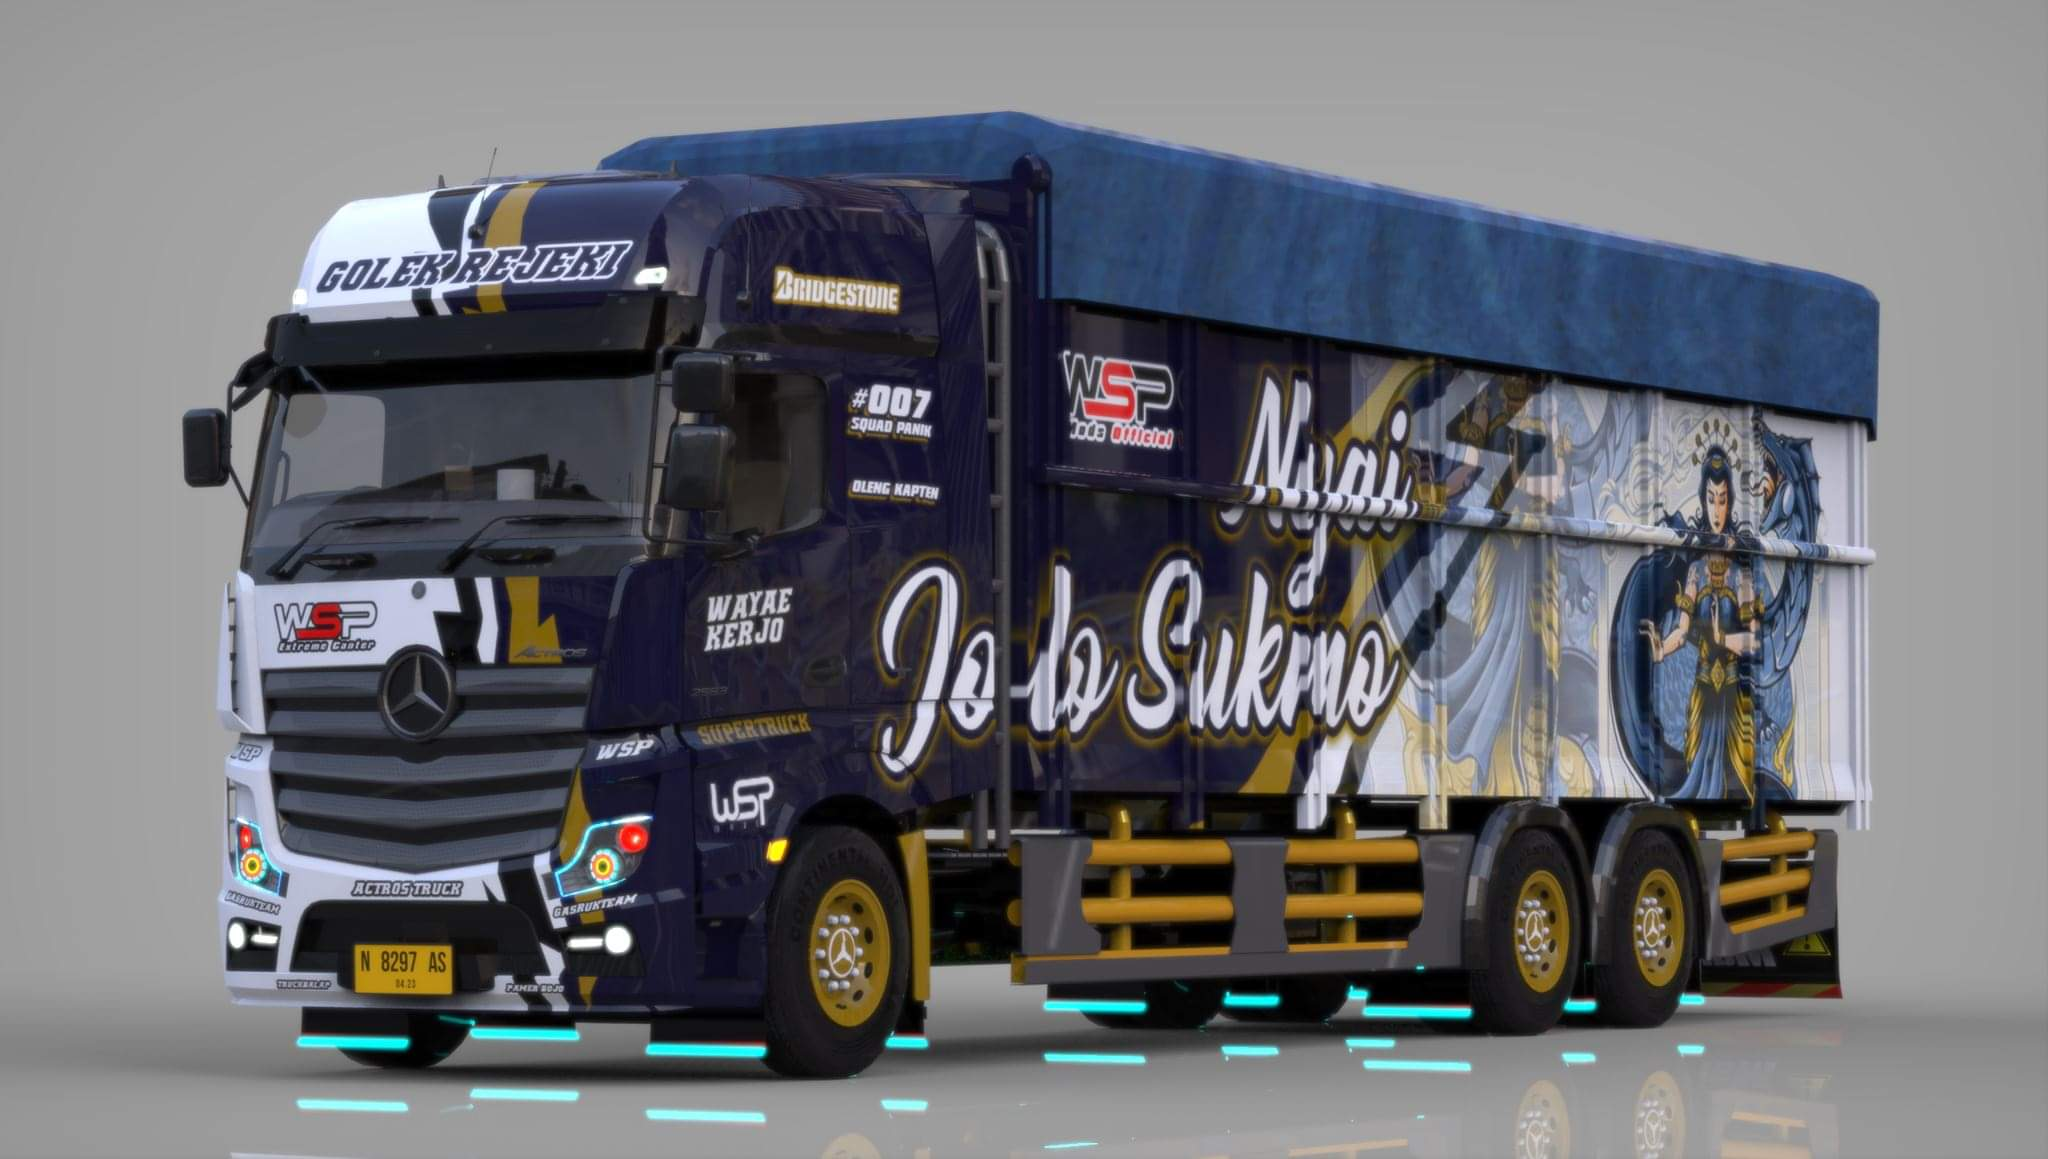 Download ACTROS TRUCK UPDATE Mod for Bus Simulator Indonesia, ACTROS TRUCK, Bus Simulator Indonesia Mod, BUSSID mod, Hino Ranger Truck Mod, SGCArena, Truck Mod for BUSSID, Vehicle Mod